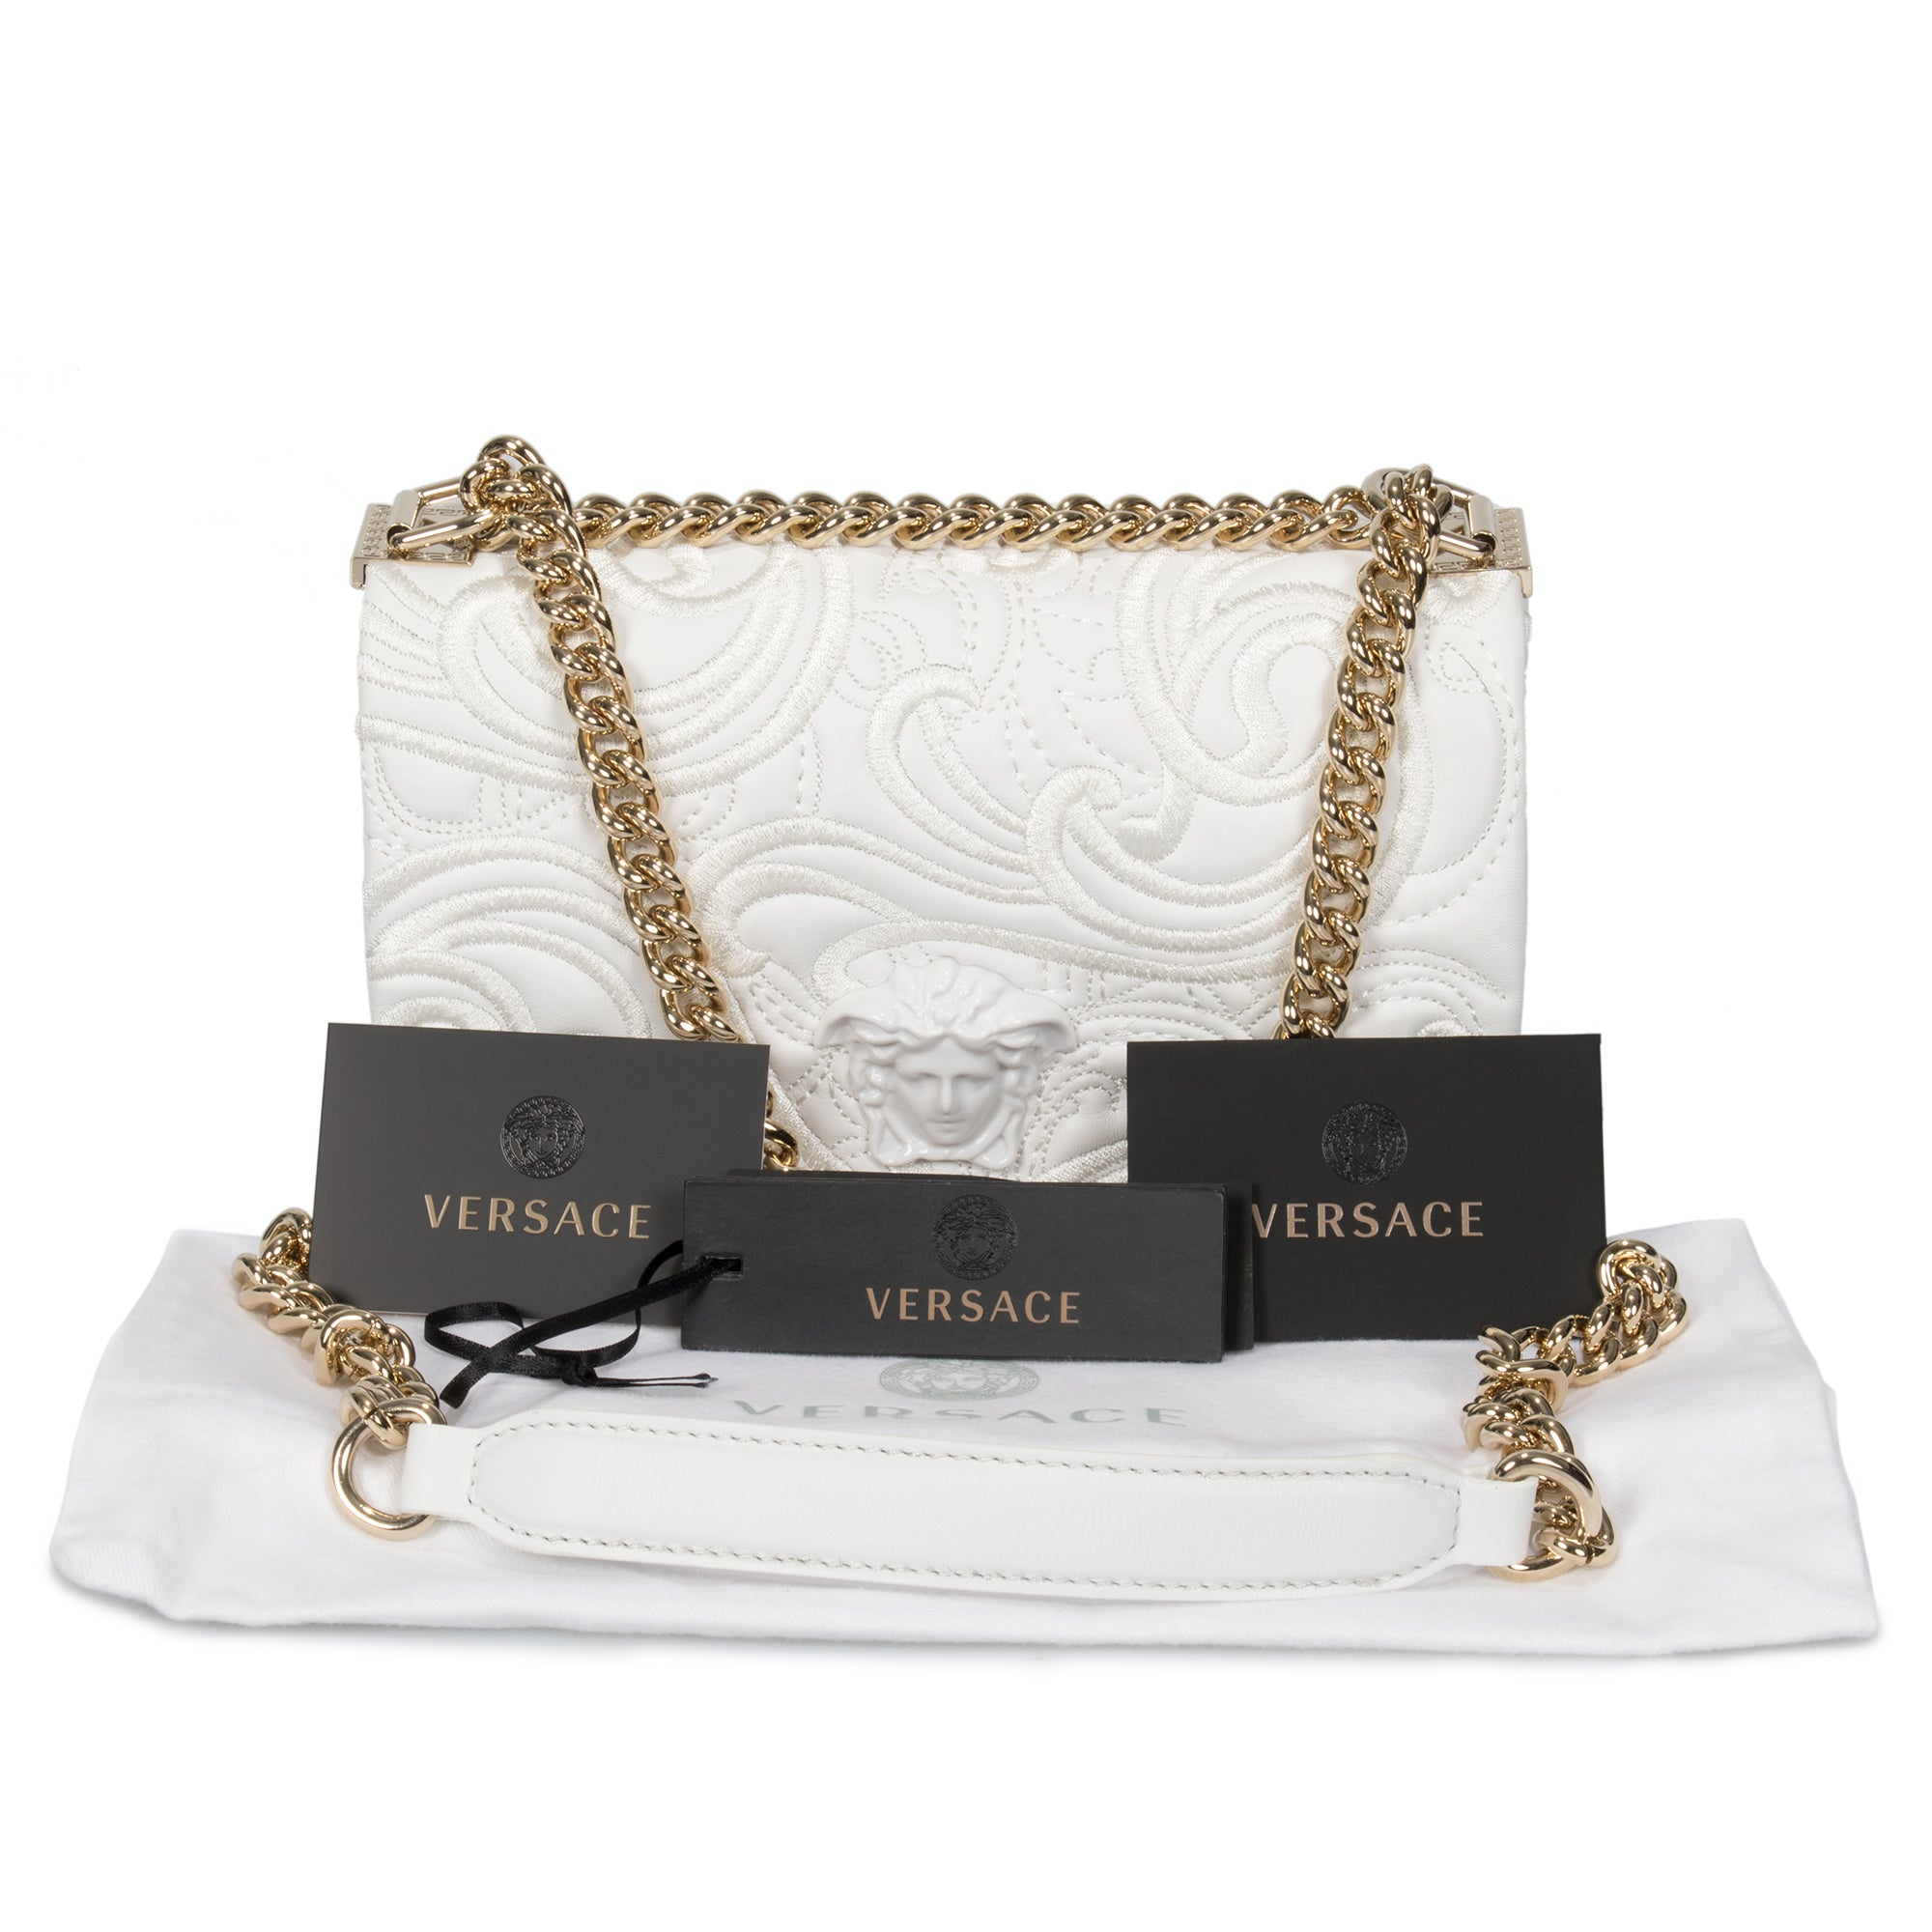 Versace Embroidered Baroque Palazzo Bag